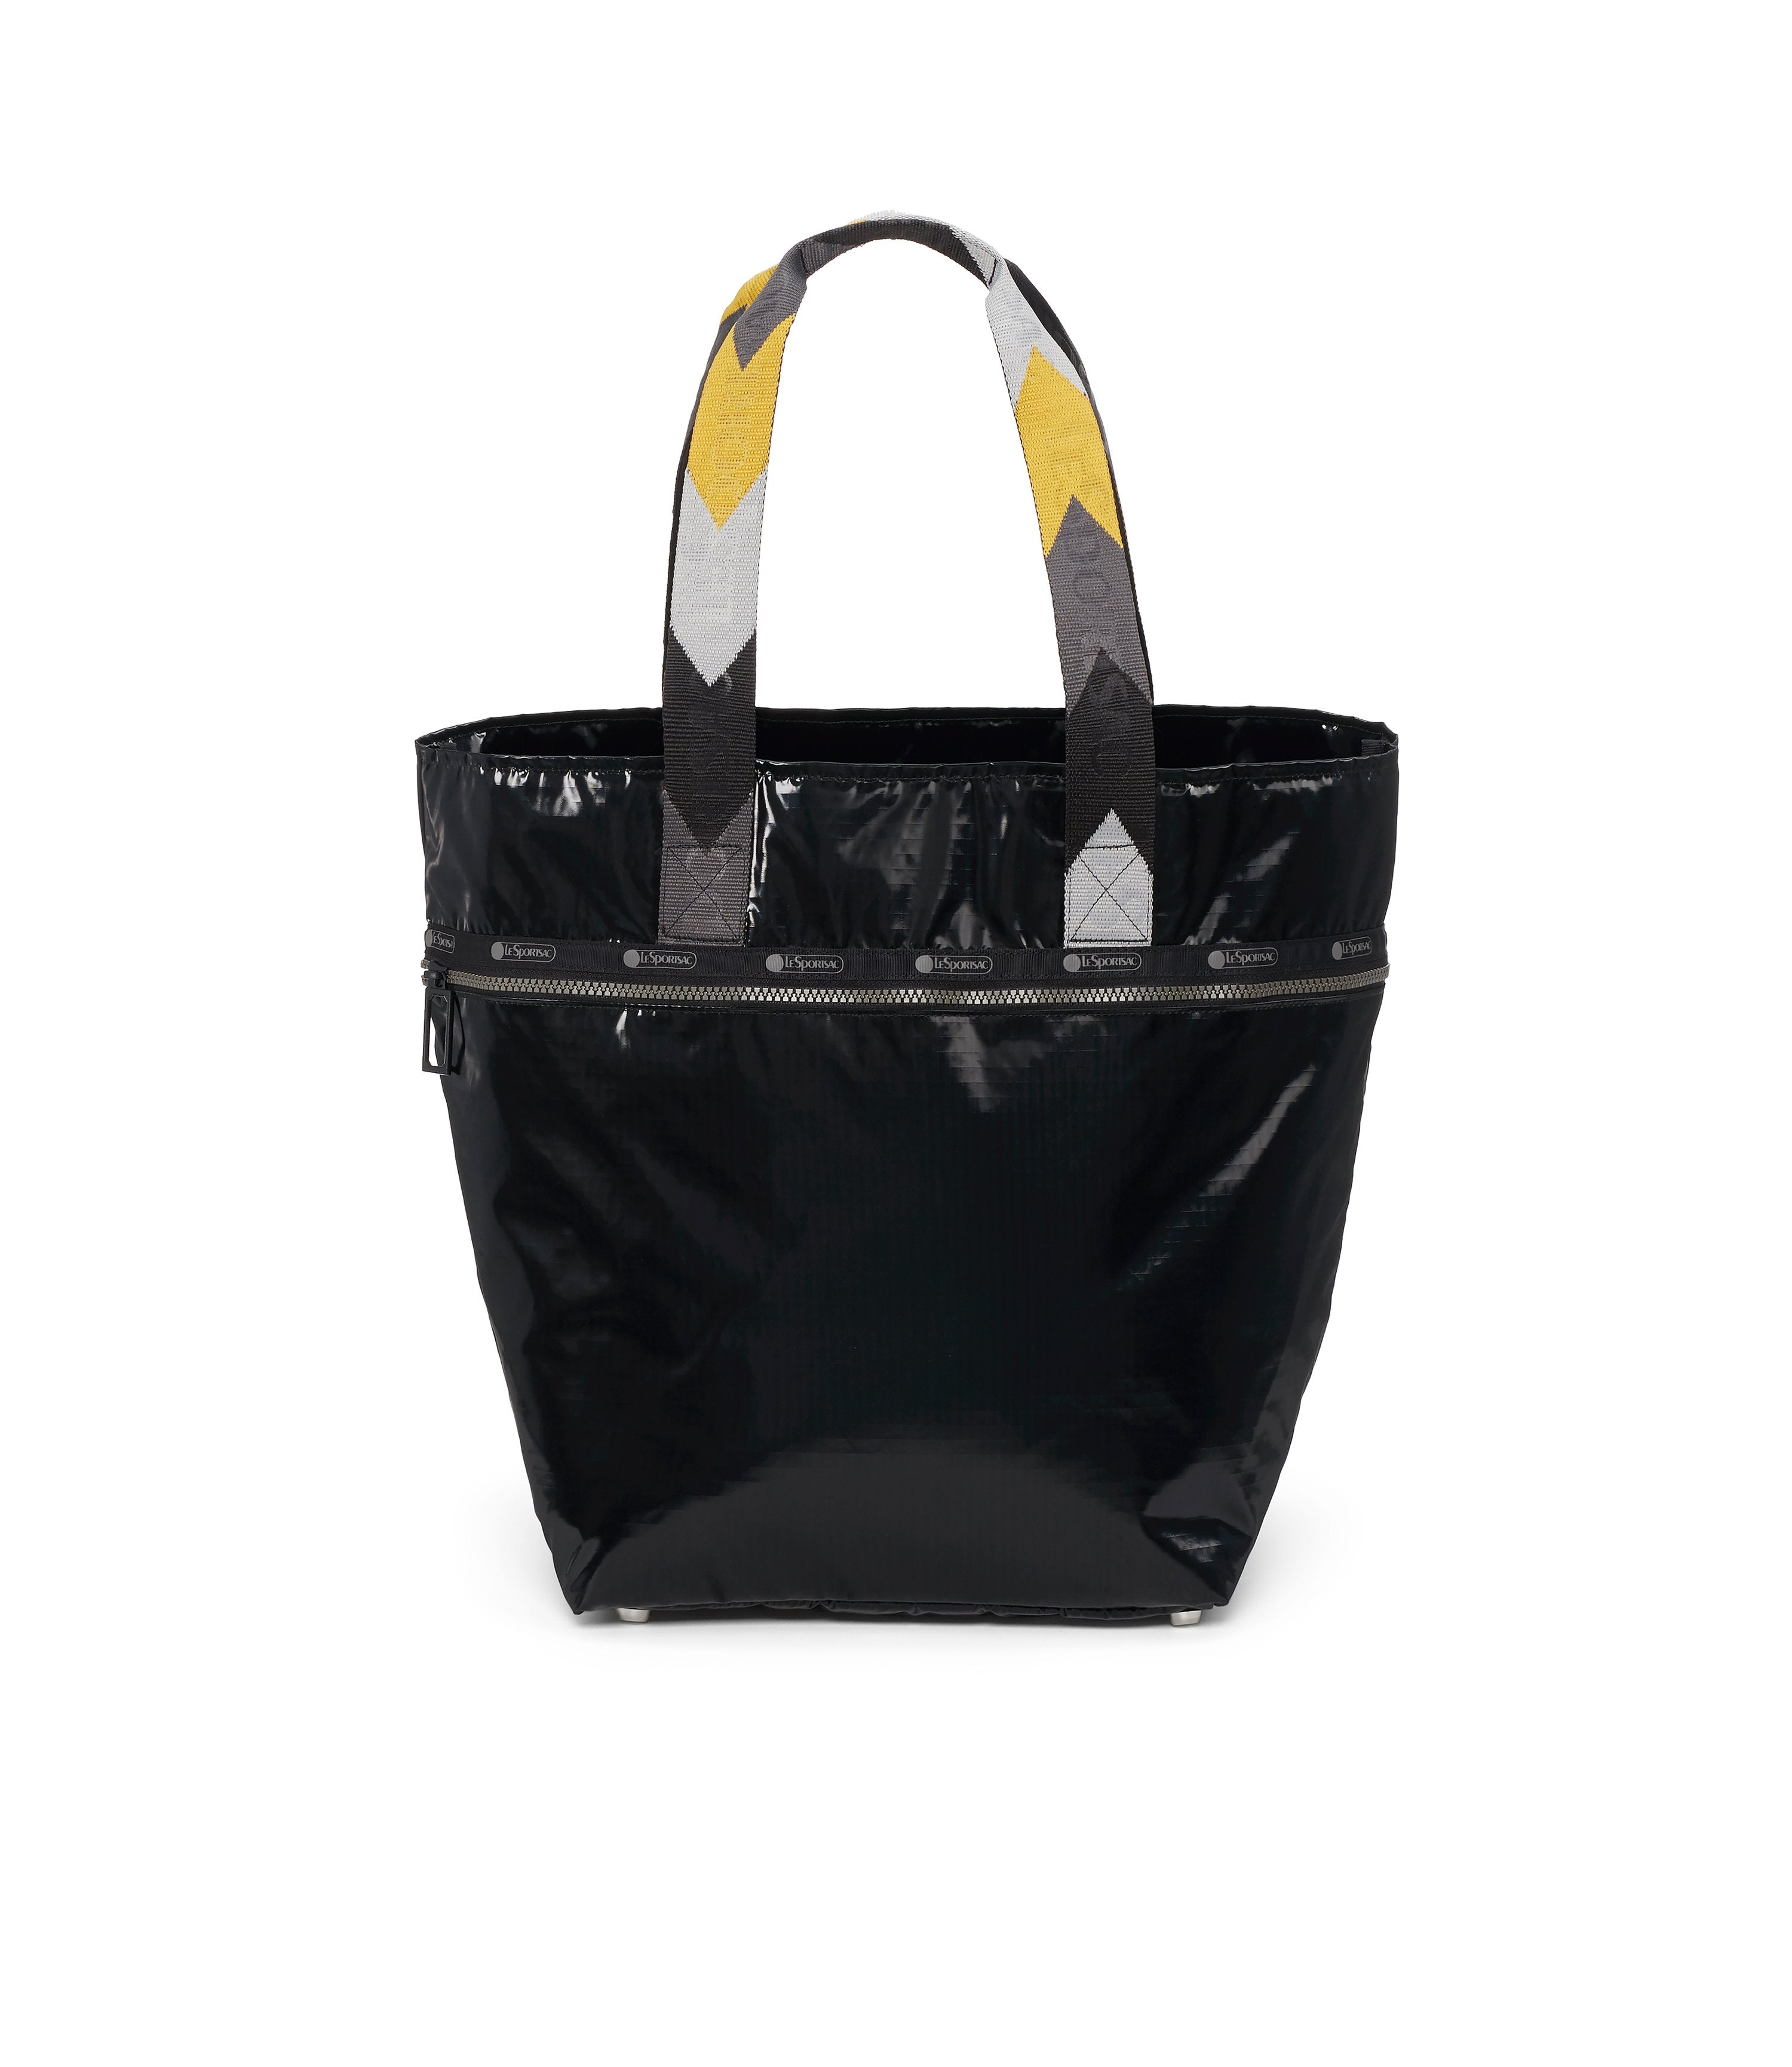 Large Elle Tote, Women's Tote Bags & Tote Purses, Carry-on, LeSportsac, Black Arrow Liquid Patent